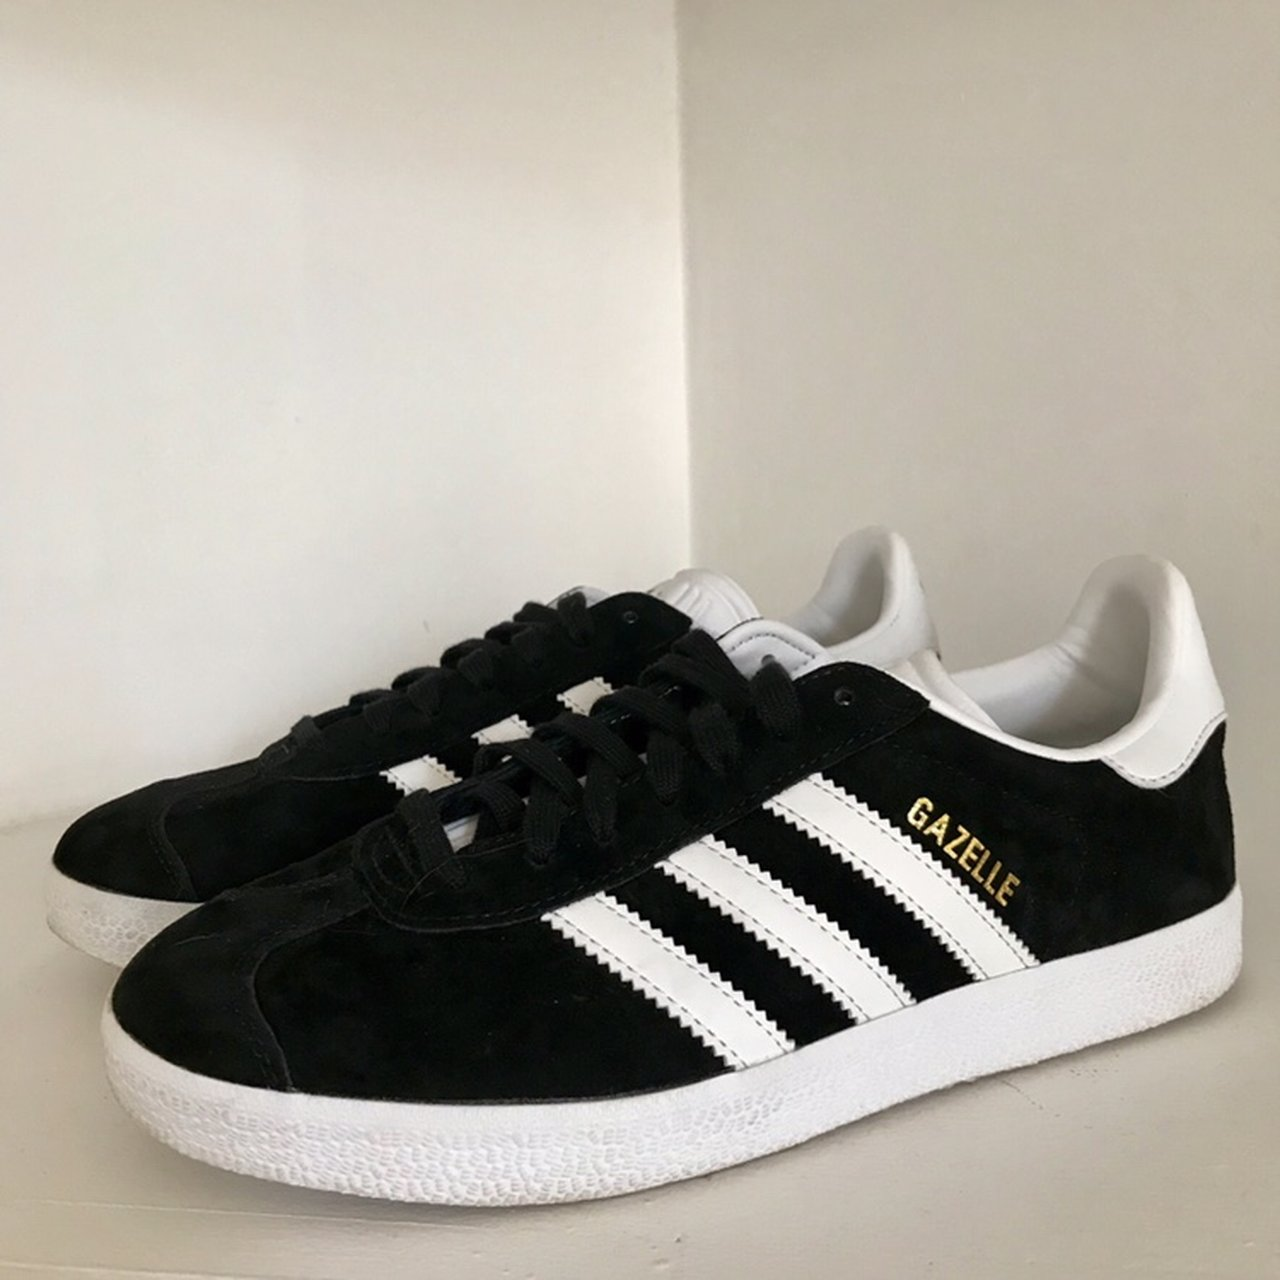 Women s Black Adidas Gazelle Shoes 🔥 Great condition b51c31b1f8